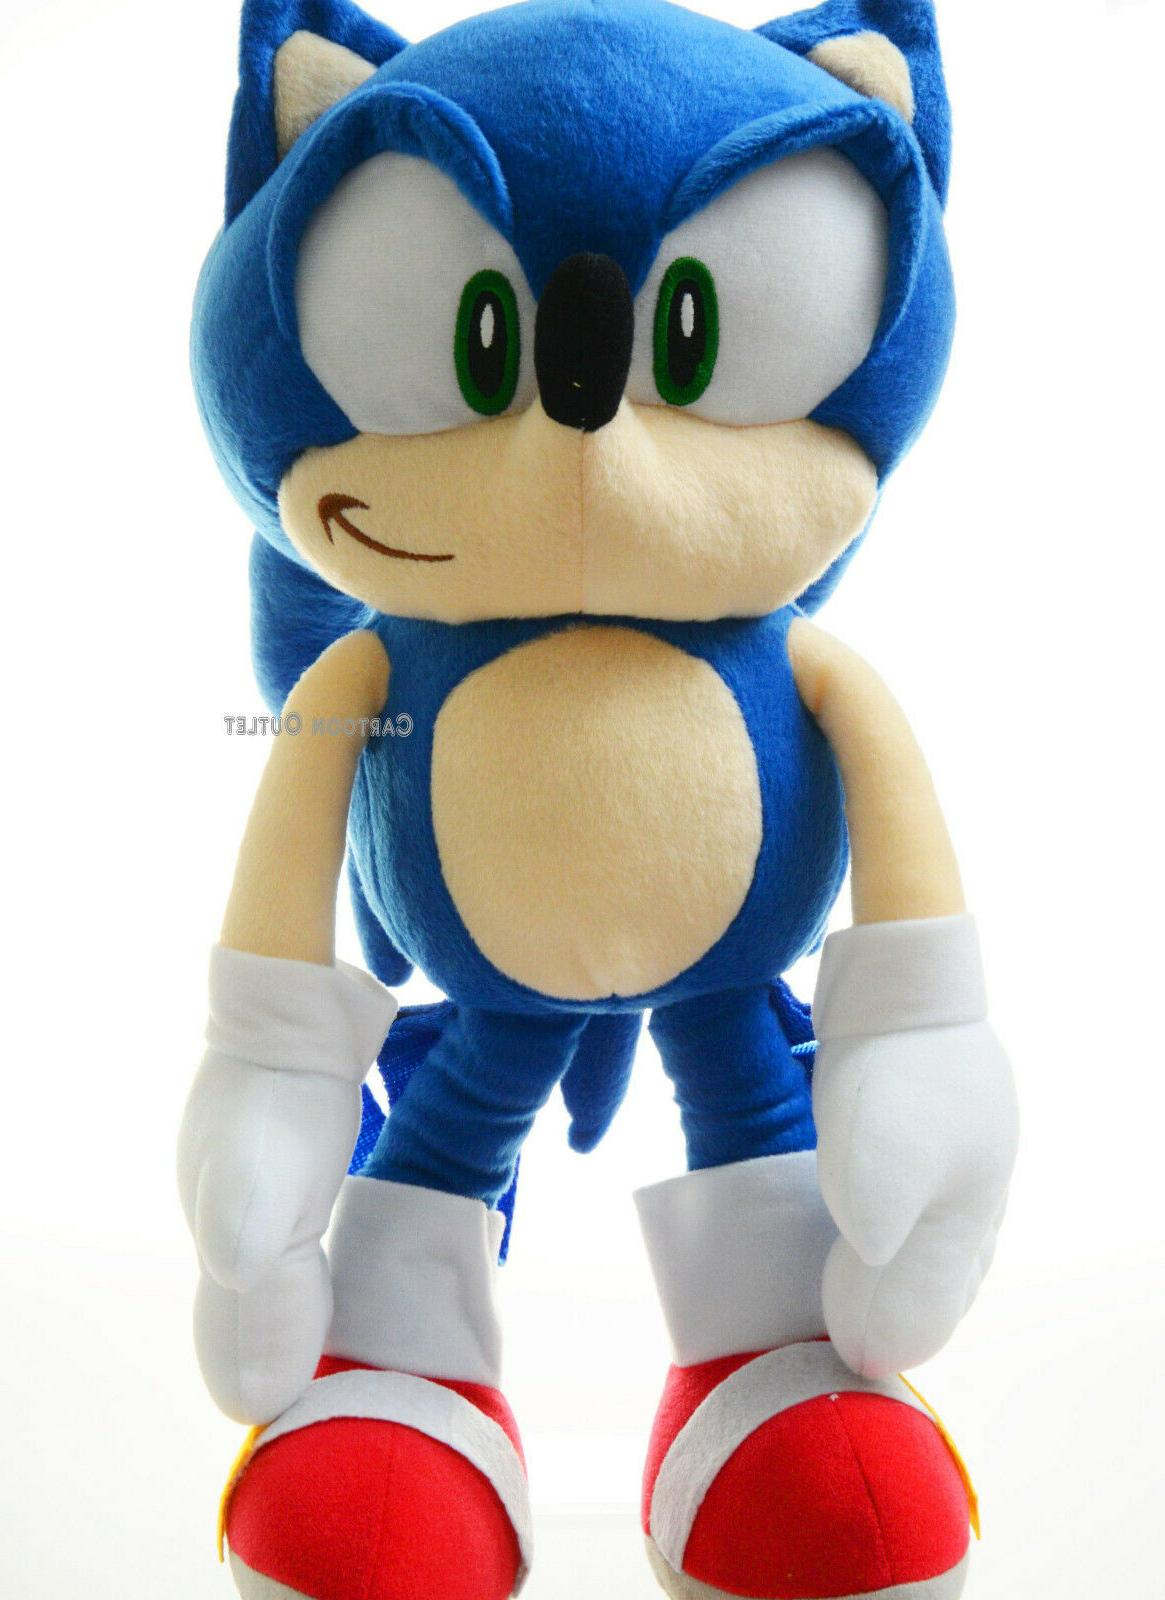 Large Sonic The Hedgehog Plush Doll Backpack Stuffed Figuire